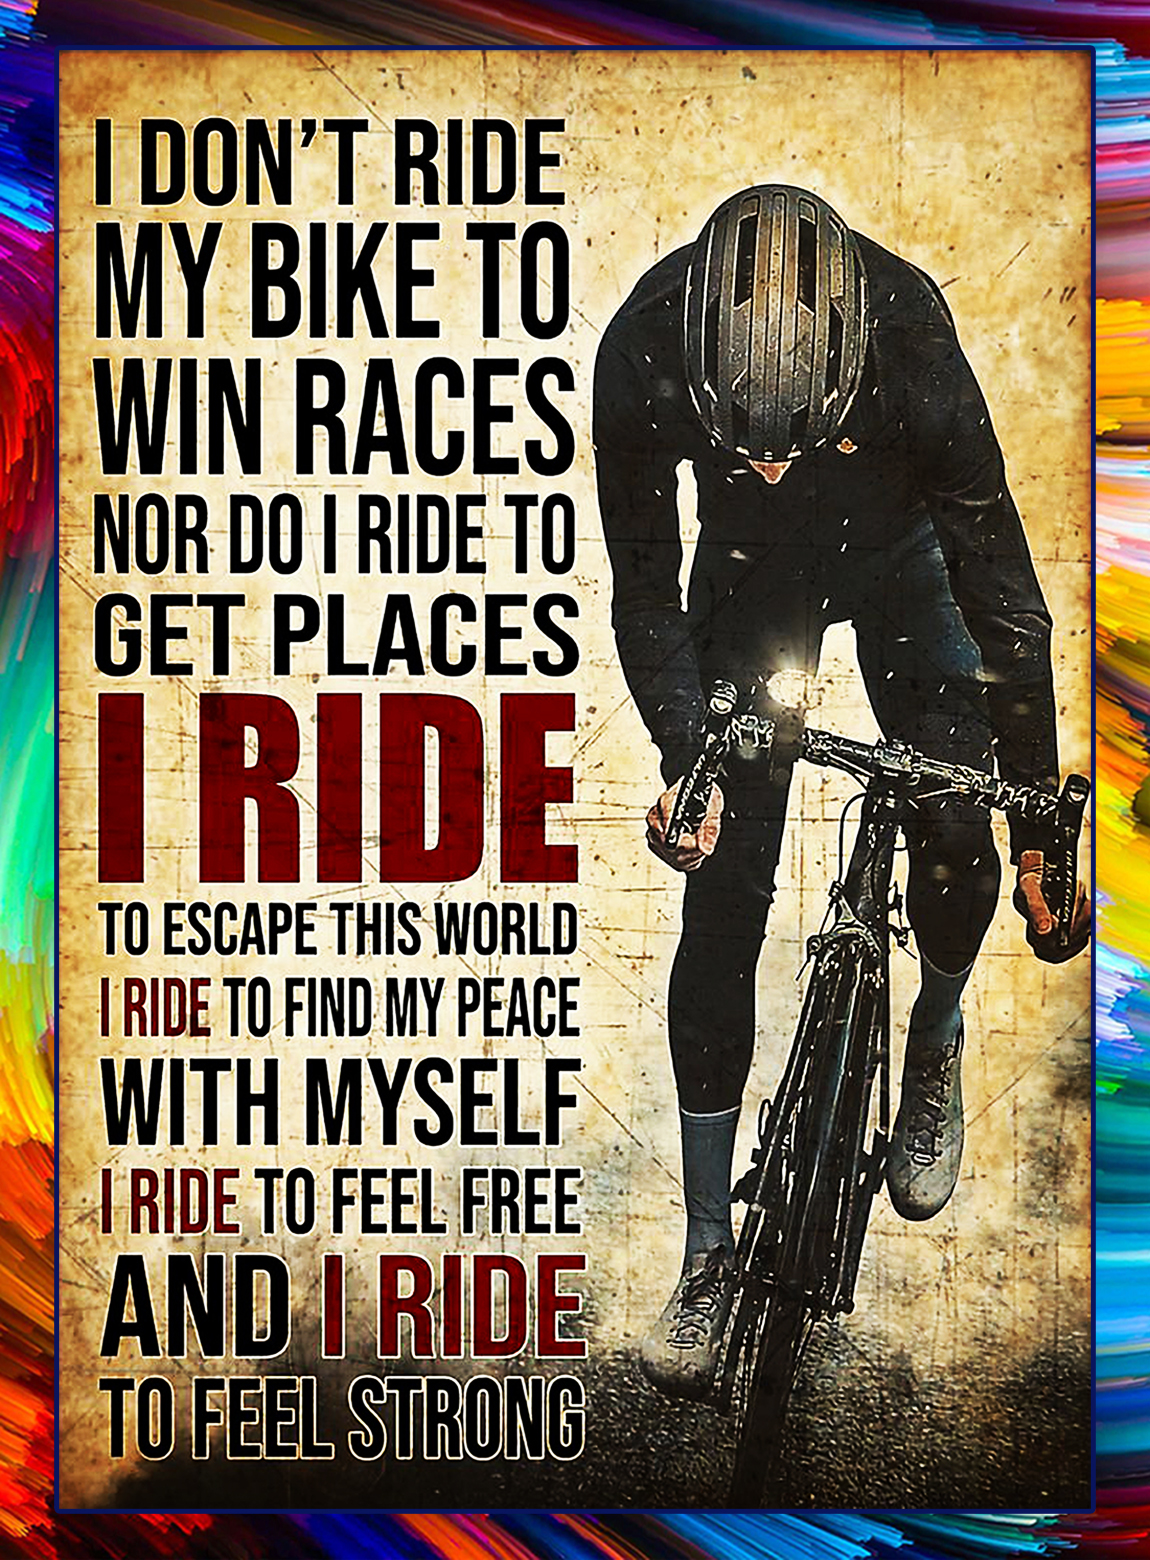 I don't ride my bike to win races poster - A2